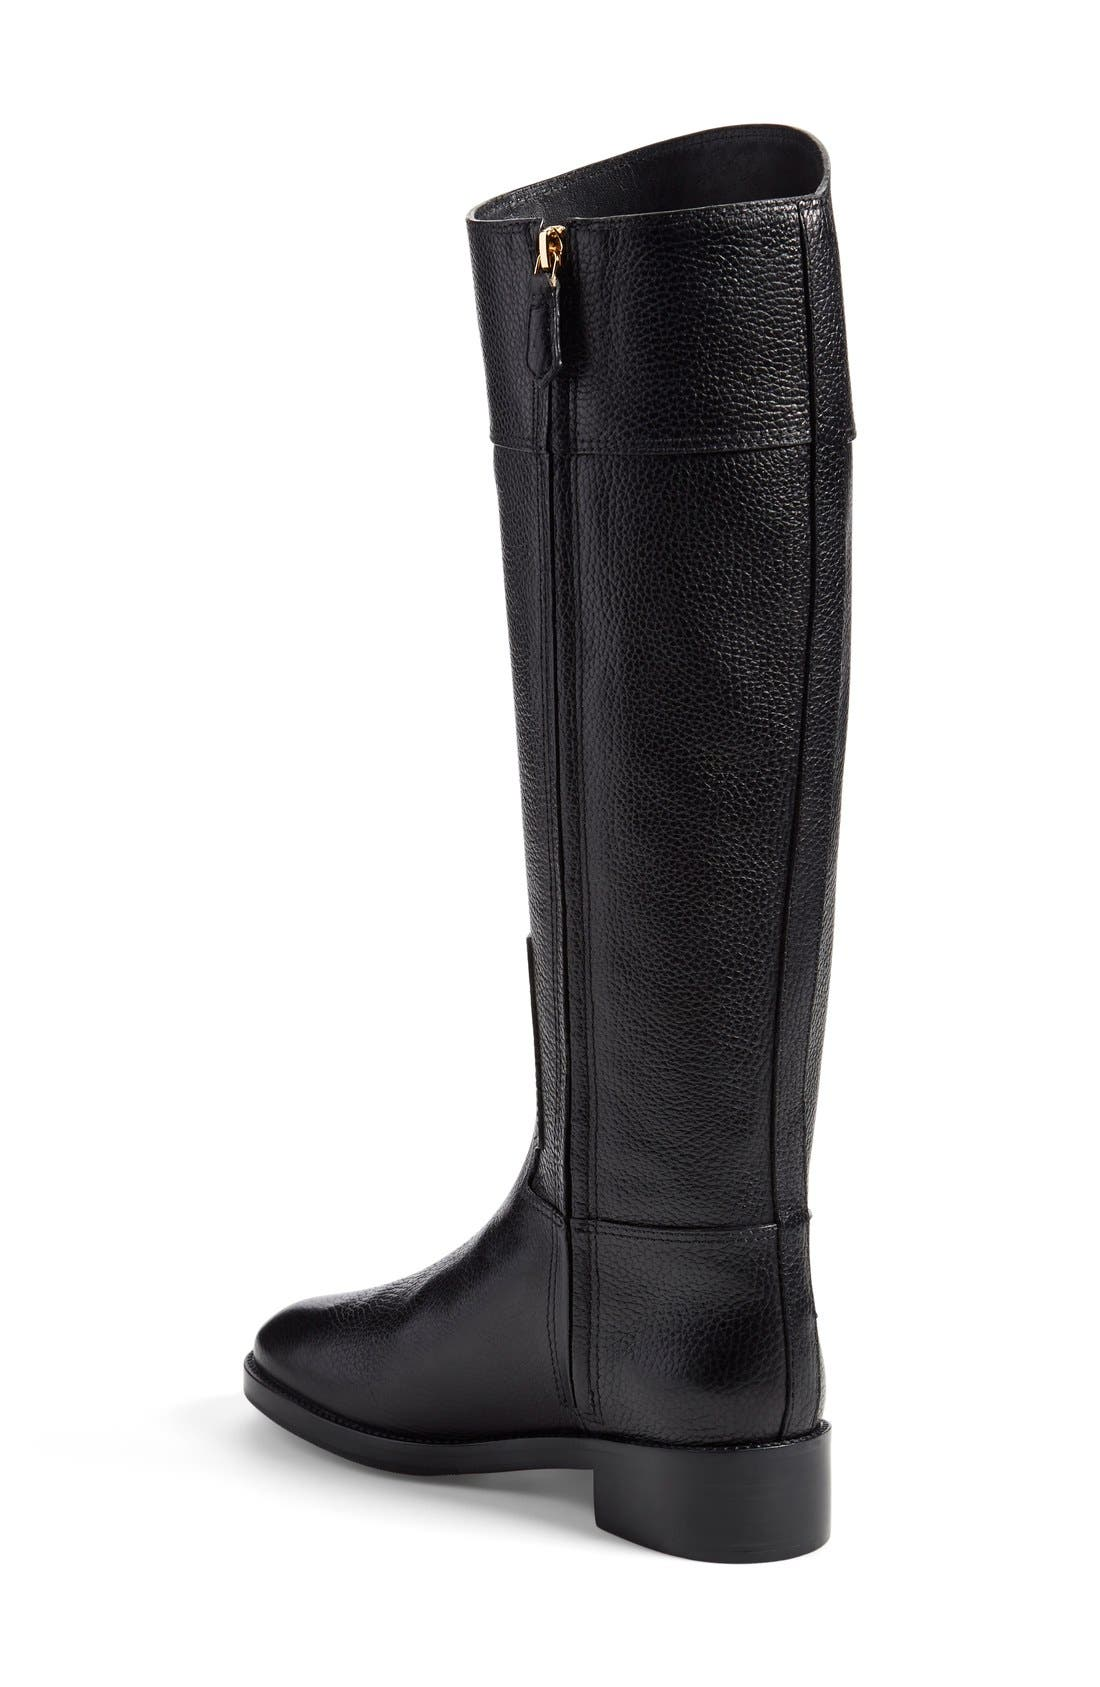 'Joanna' Riding Boot,                             Alternate thumbnail 3, color,                             001